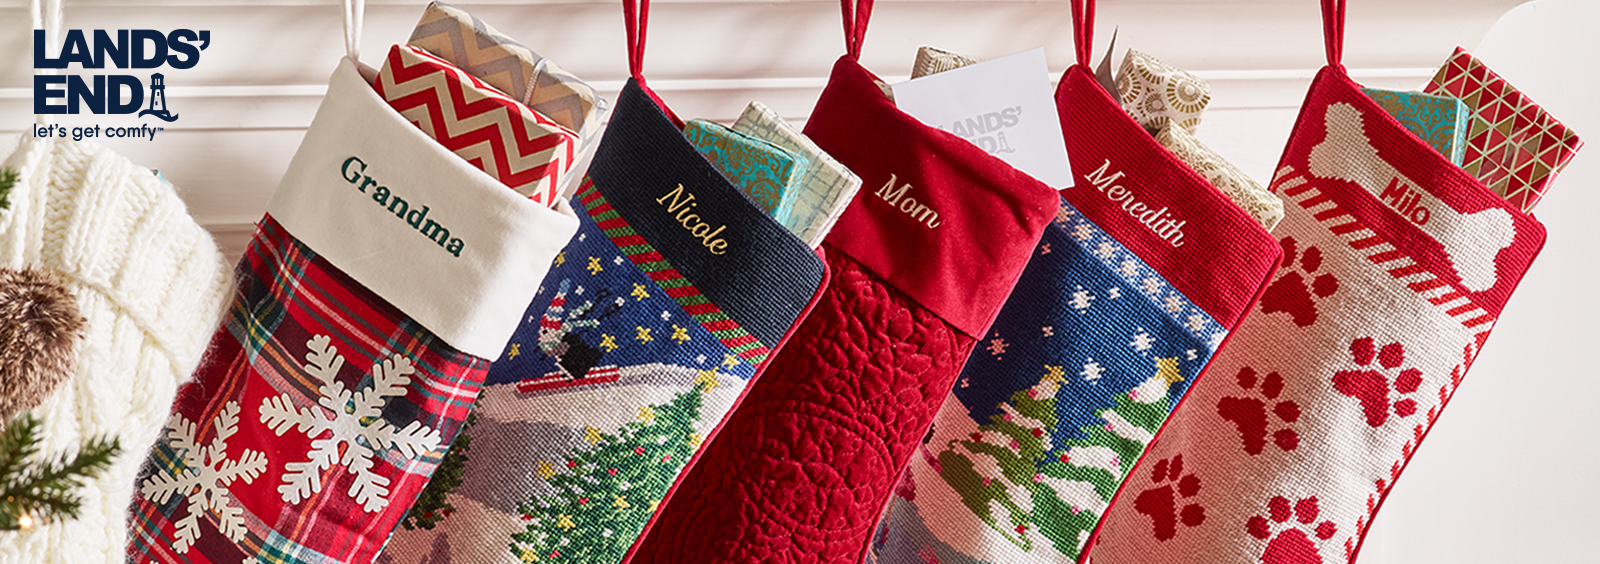 Stocking Stuffers for the Hard-to-Buy-For on Your List